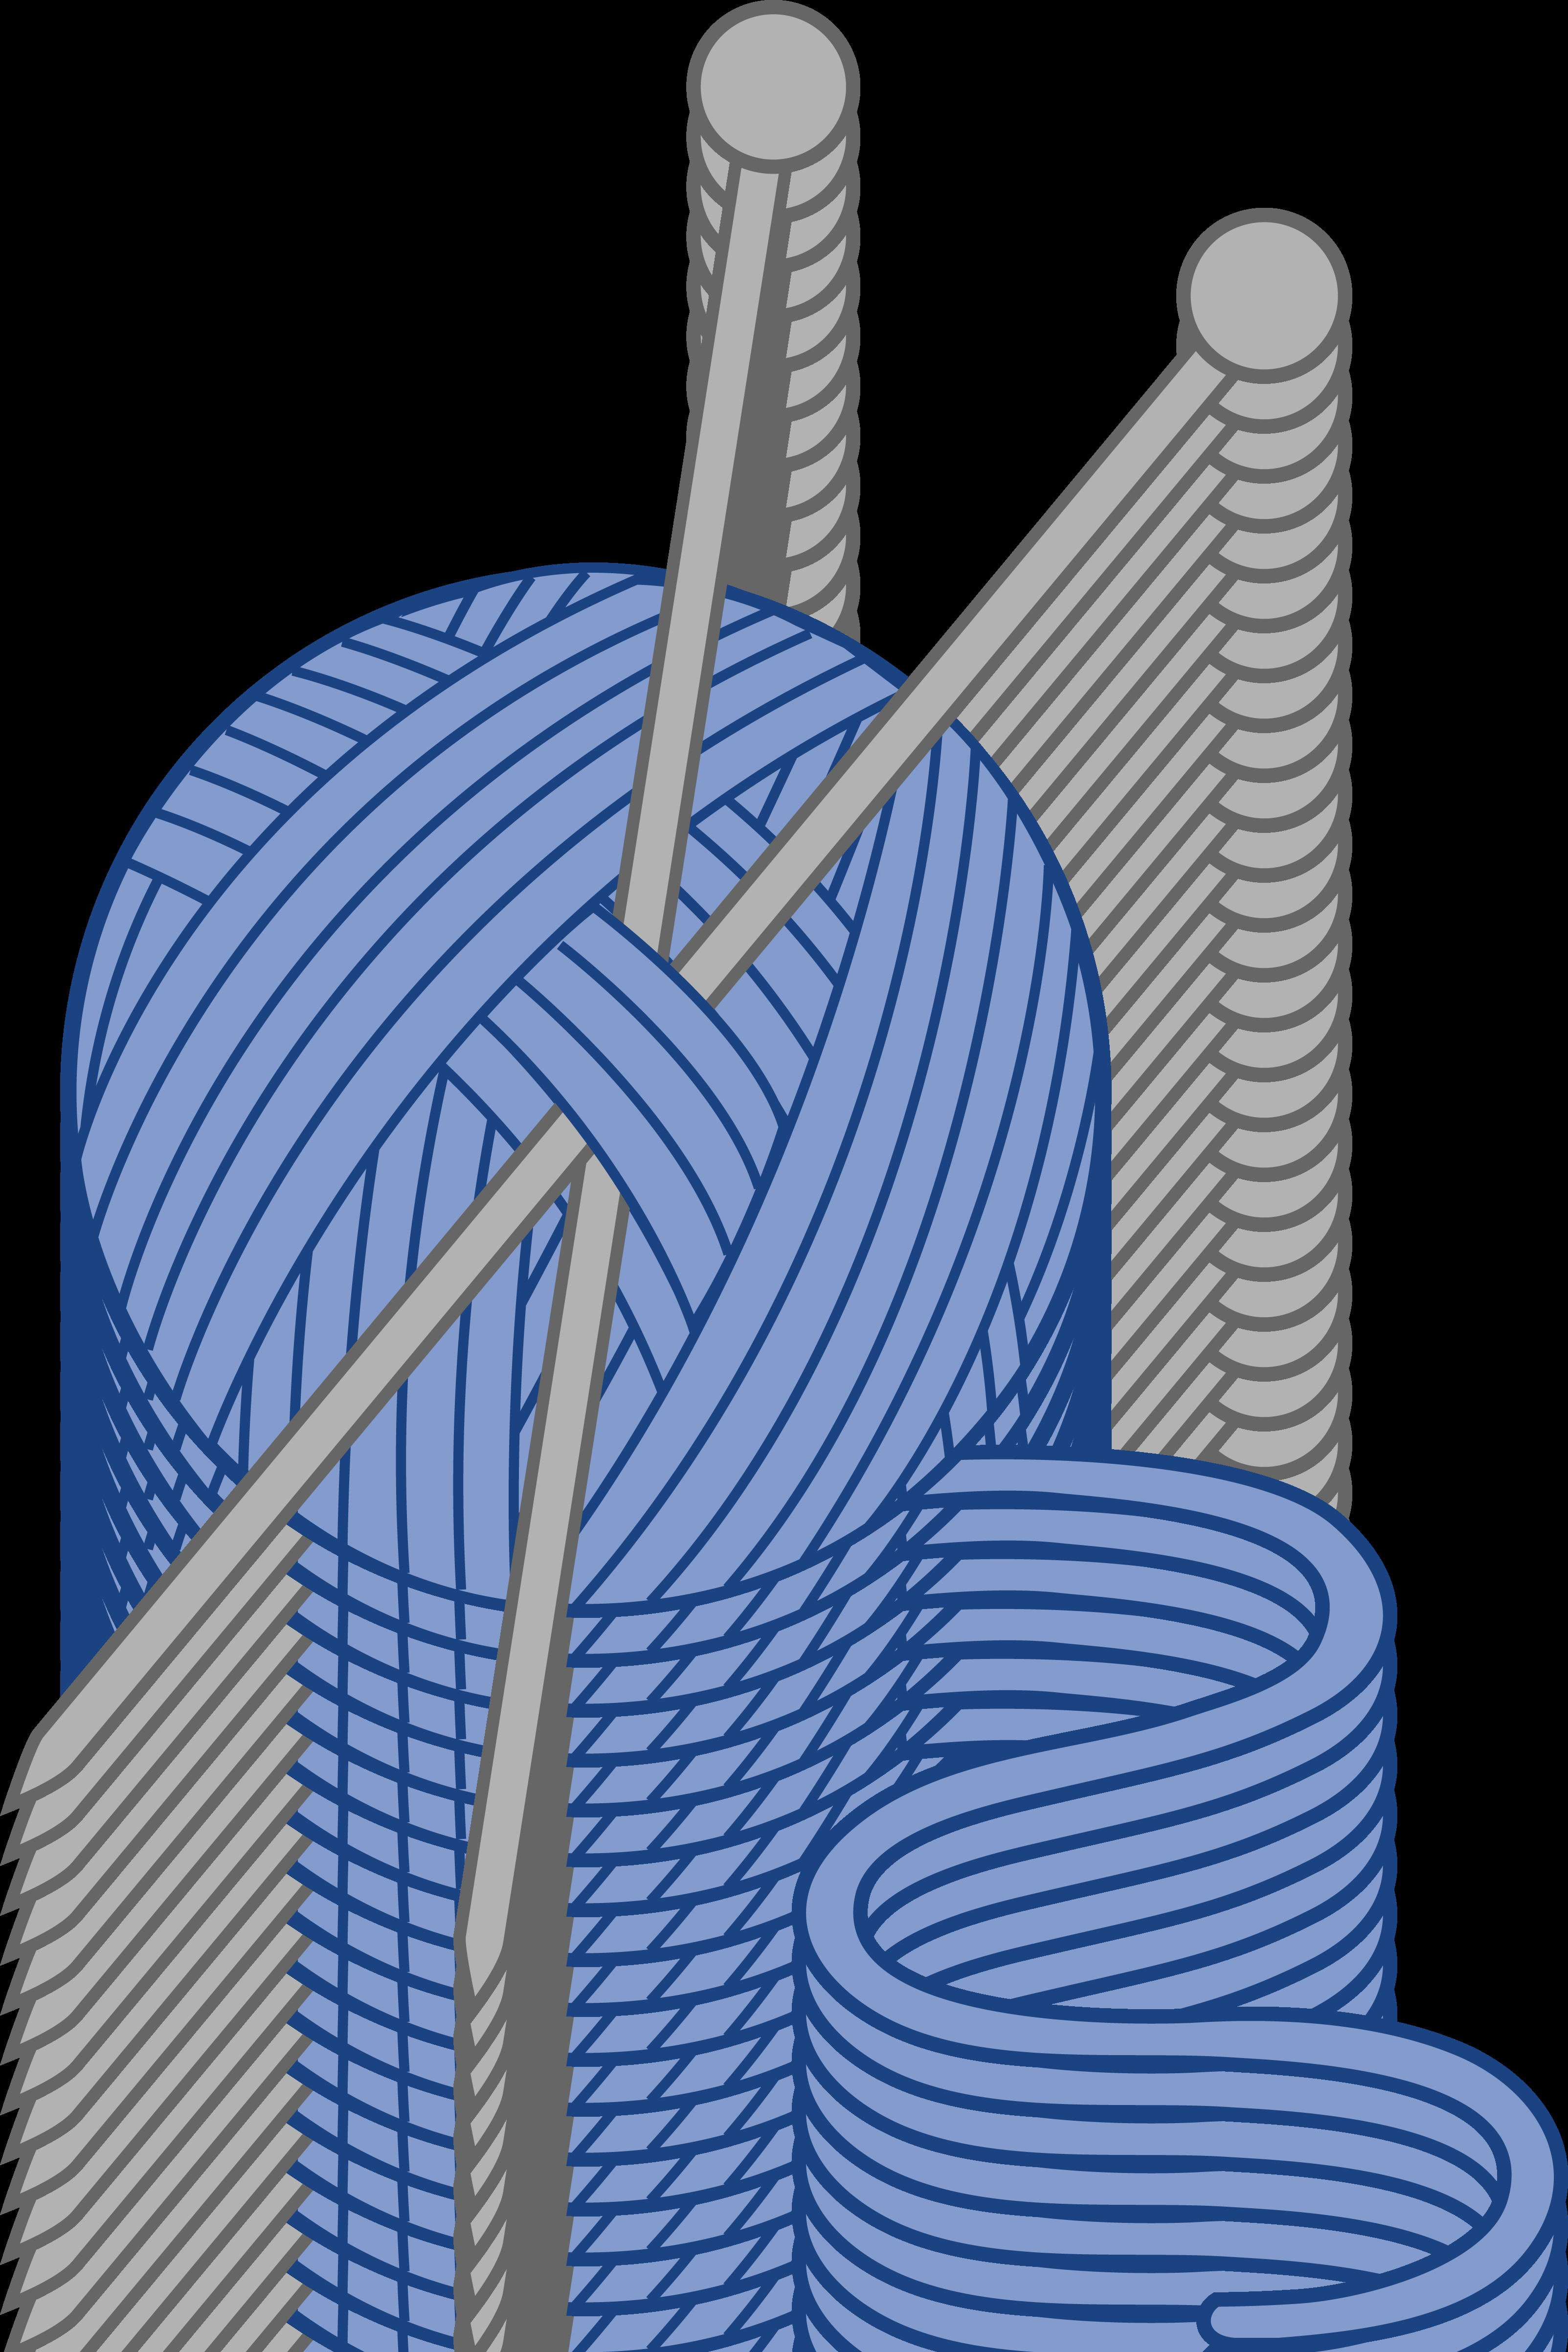 Best Of Blue Yarn and Knitting Needles Free Clip Art Knitting Needles and Yarn Of Amazing 46 Ideas Knitting Needles and Yarn